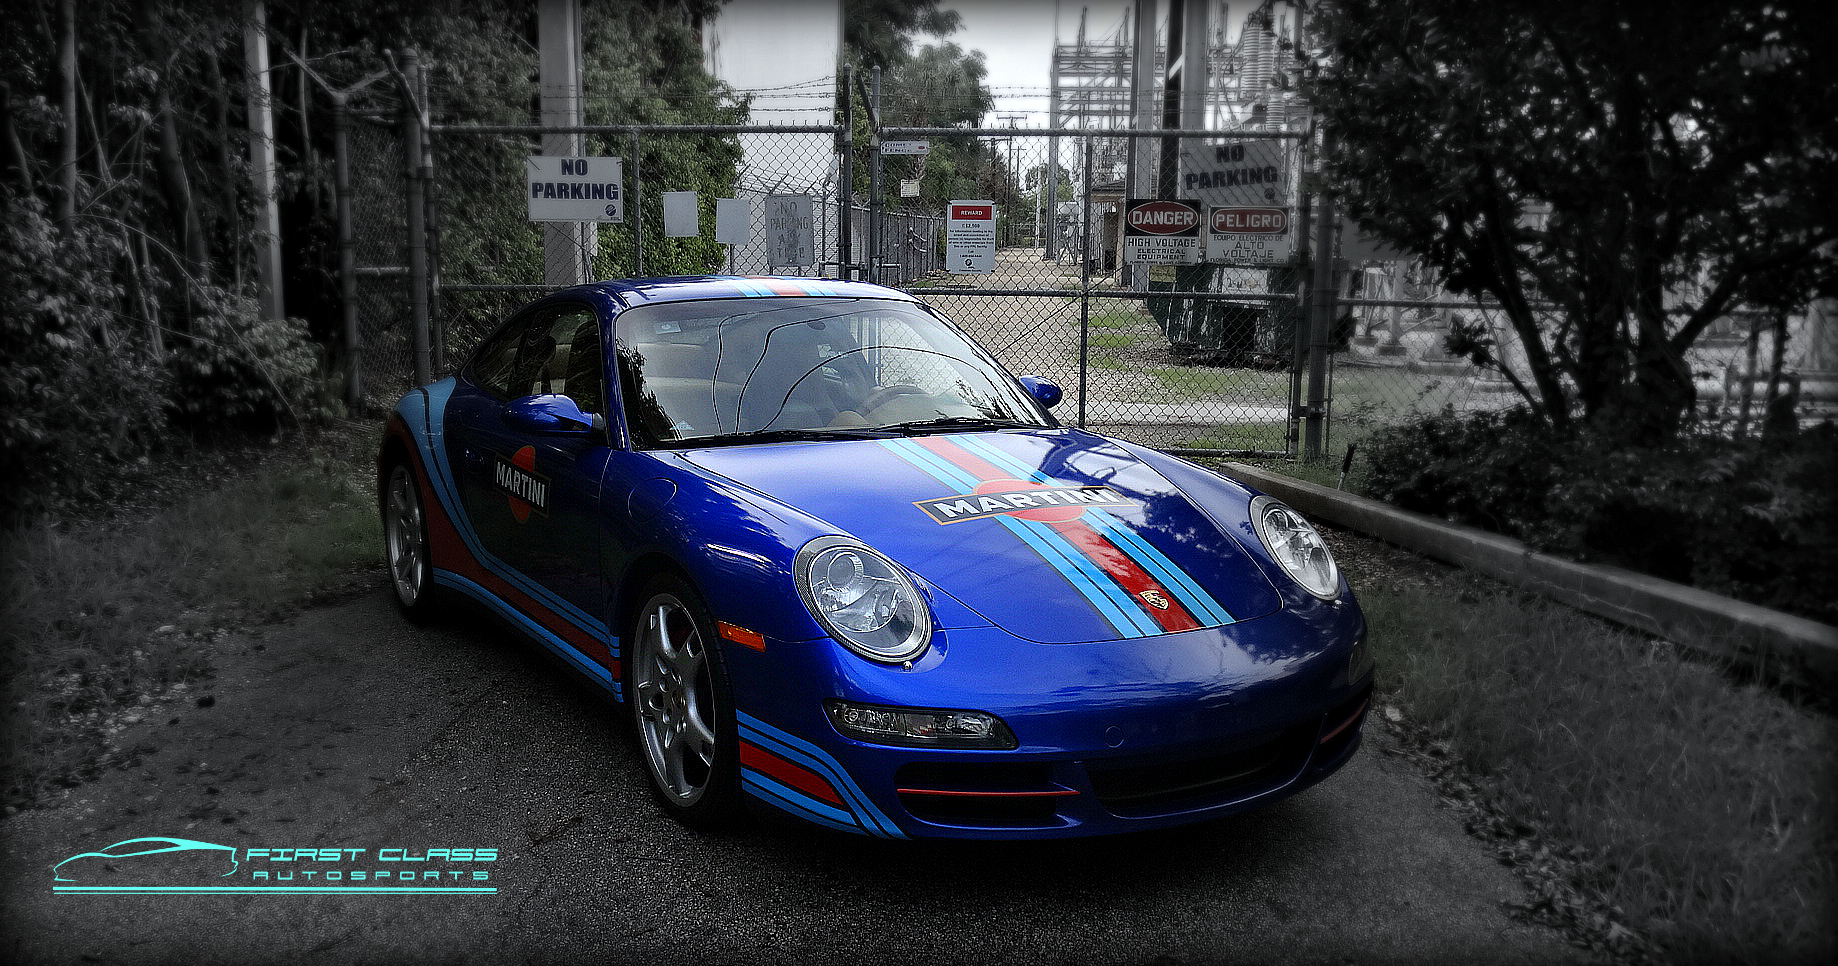 Porsche 911 Carrera 4s Turned Into Martini Racing Porsche